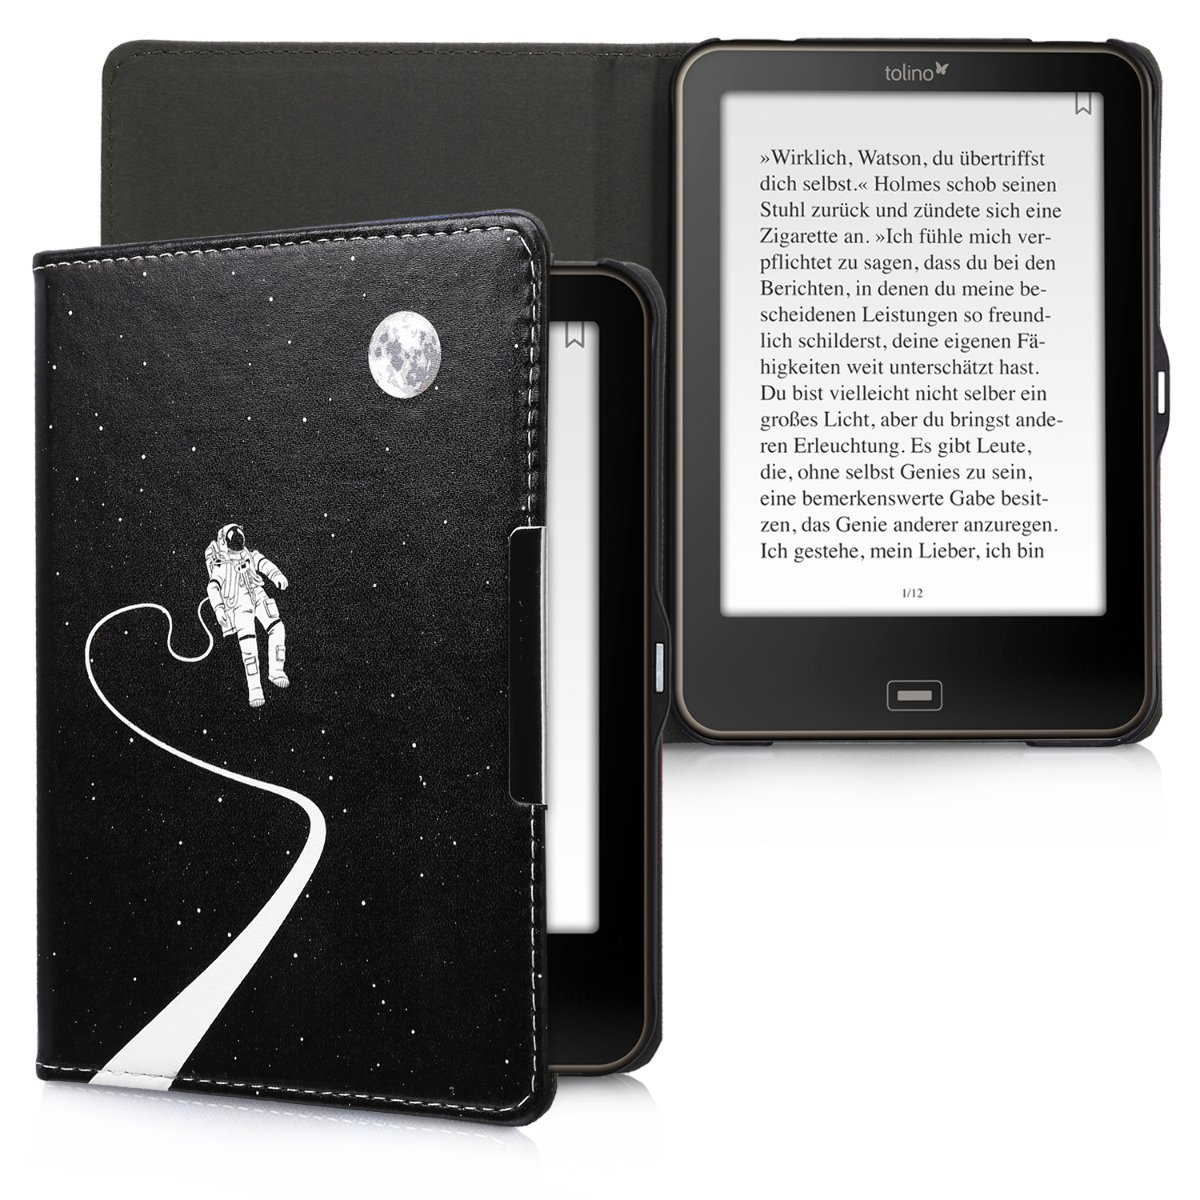 kwmobile Case for Tolino Shine 2 HD - Book Style PU Leather Protective e-Reader Cover Folio Case - white black by kwmobile (Image #6)